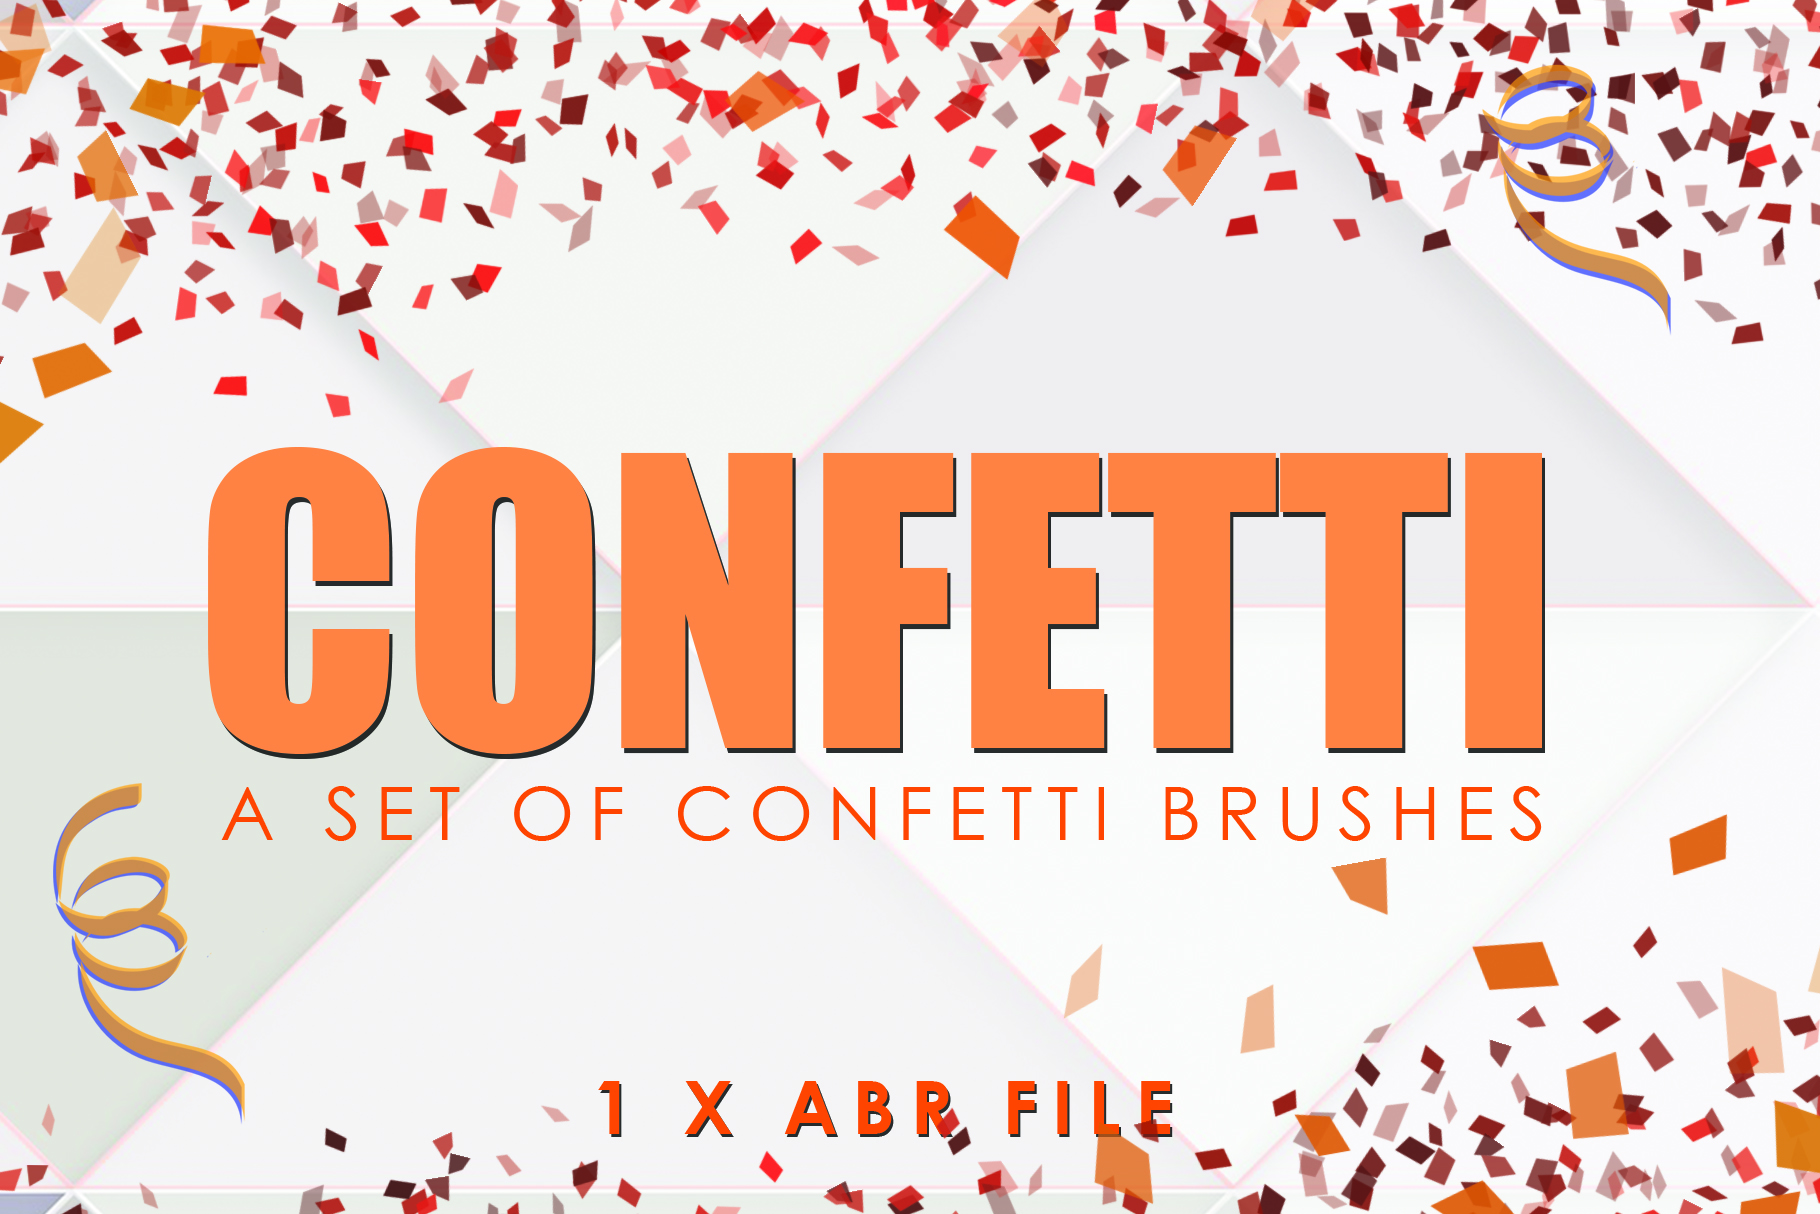 Download Free Confetti Photoshop Brush Graphic By Denestudios Creative Fabrica for Cricut Explore, Silhouette and other cutting machines.